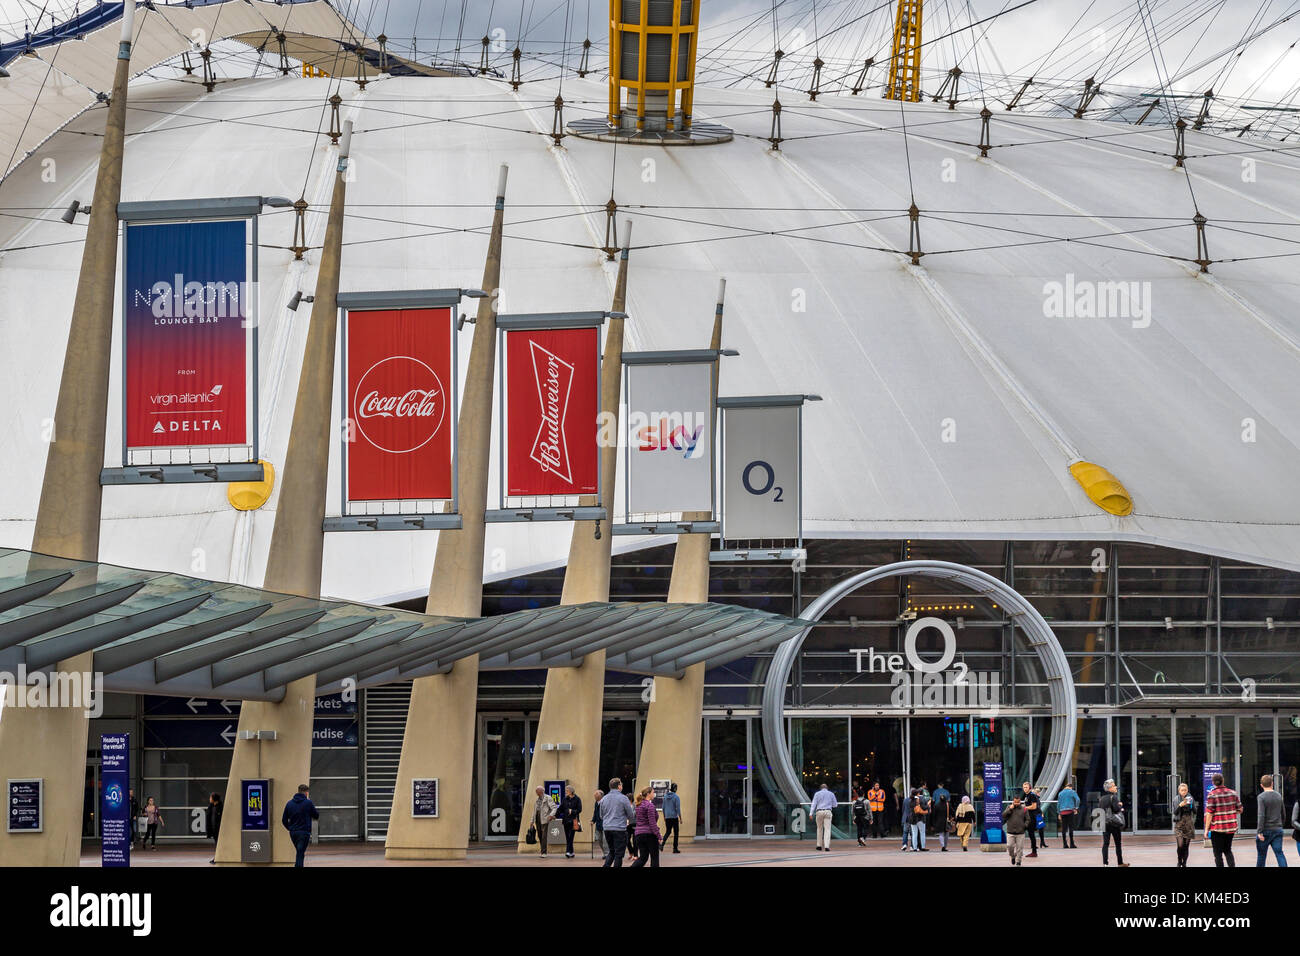 The Entrance to The O2 Arena , North Greenwich , London United Kingdom - Stock Image